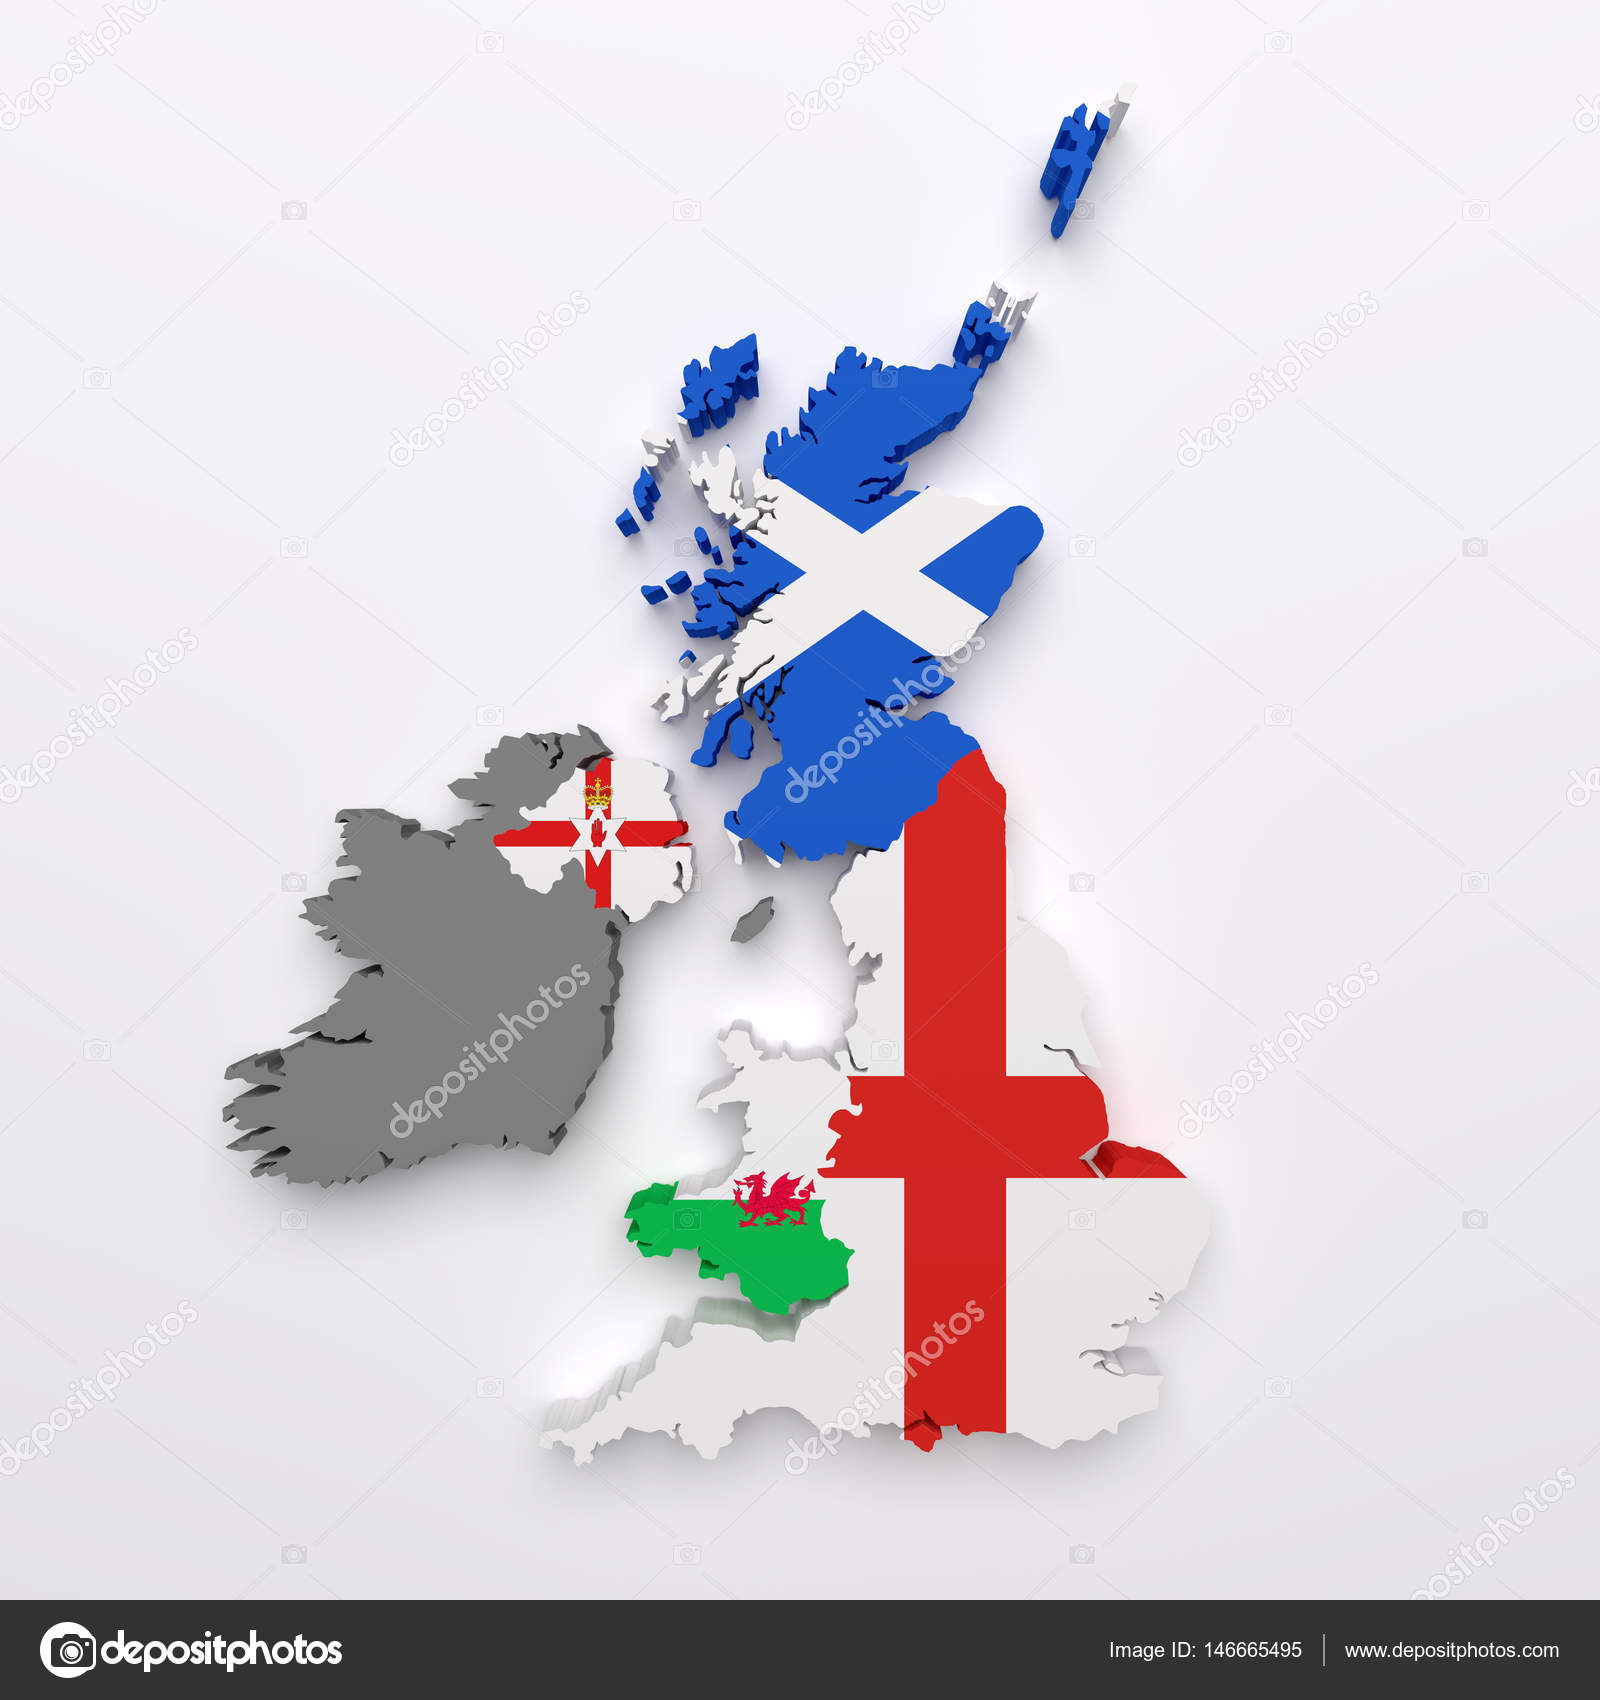 Uk countries map and flags — Stock Photo © erllre #146665495